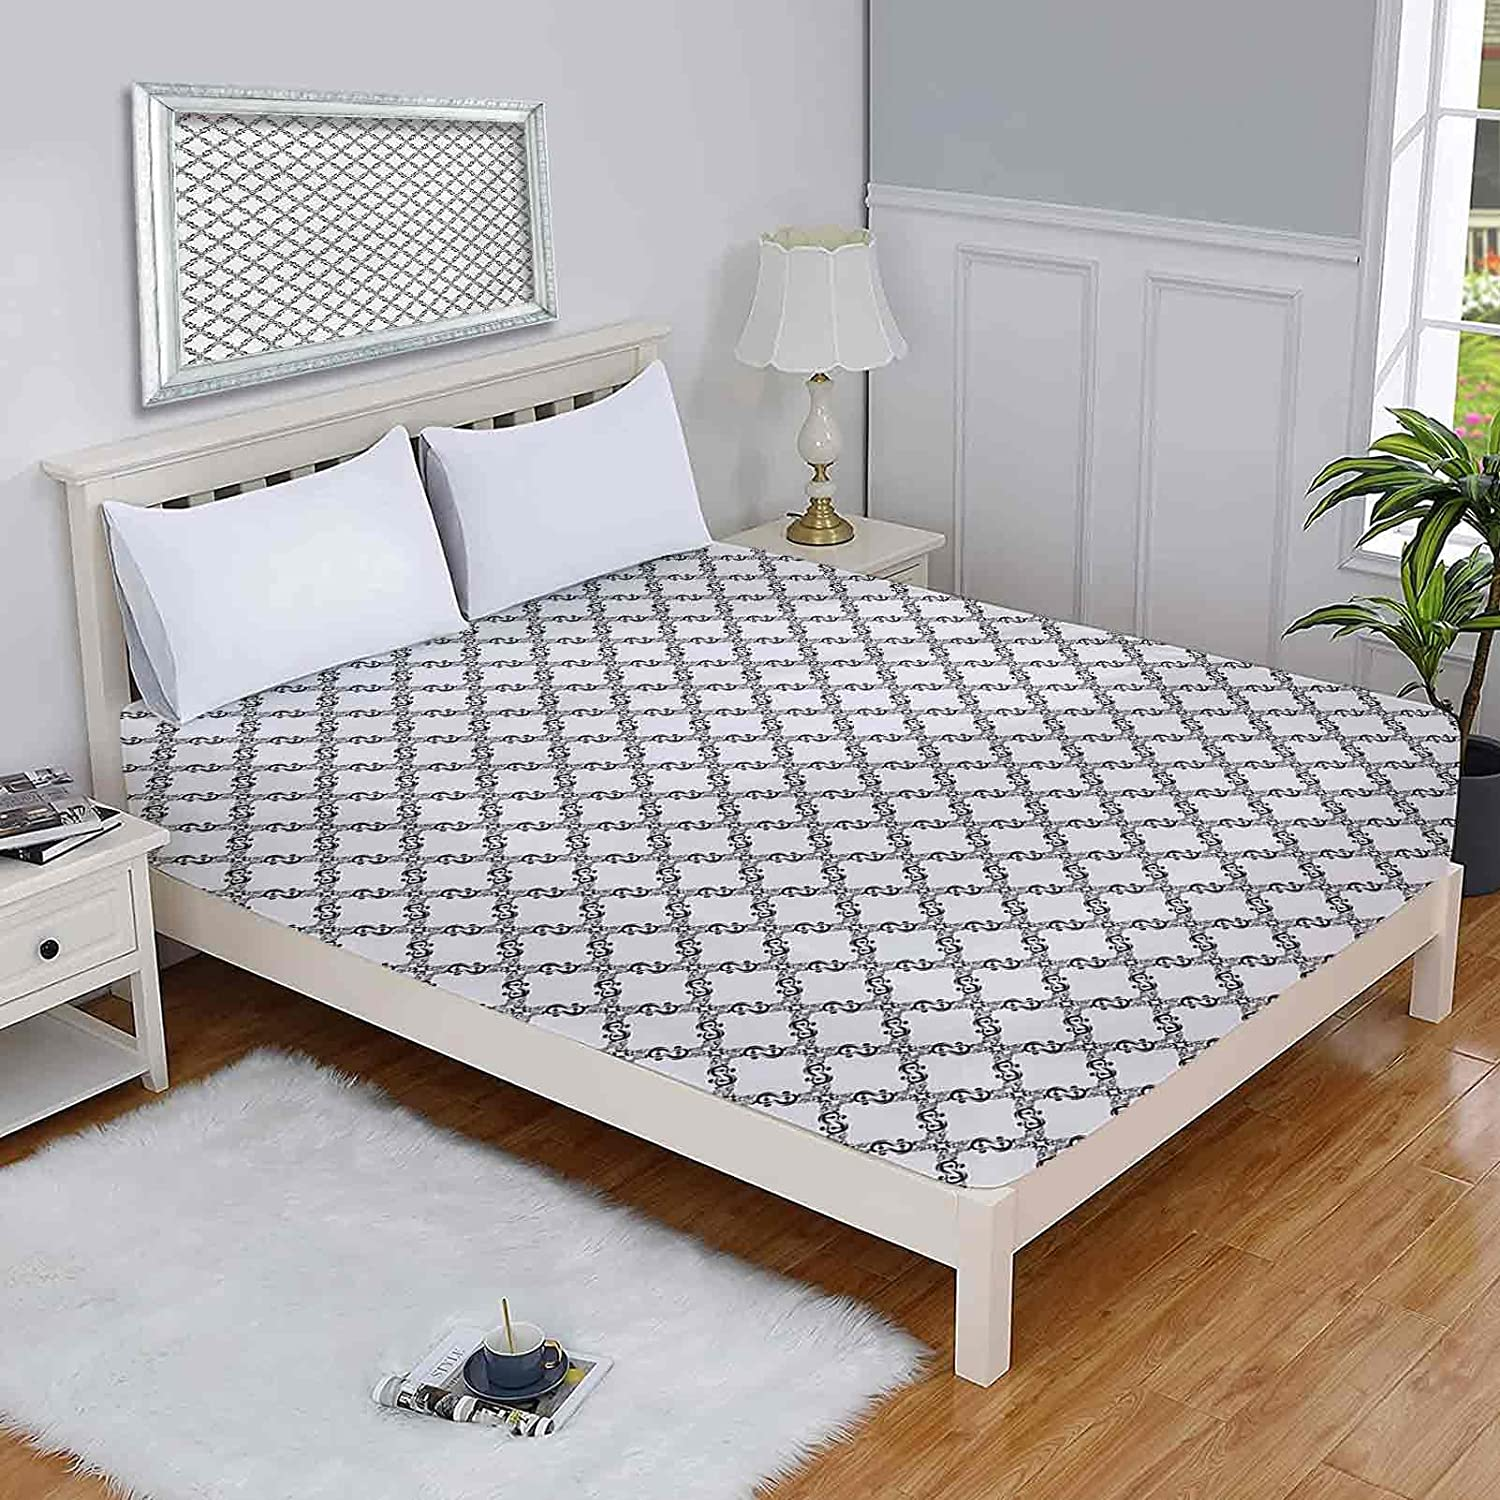 Damask Twin Mattress Protectors Old Fashioned Elegant Style Max 64% OFF Or Abstract